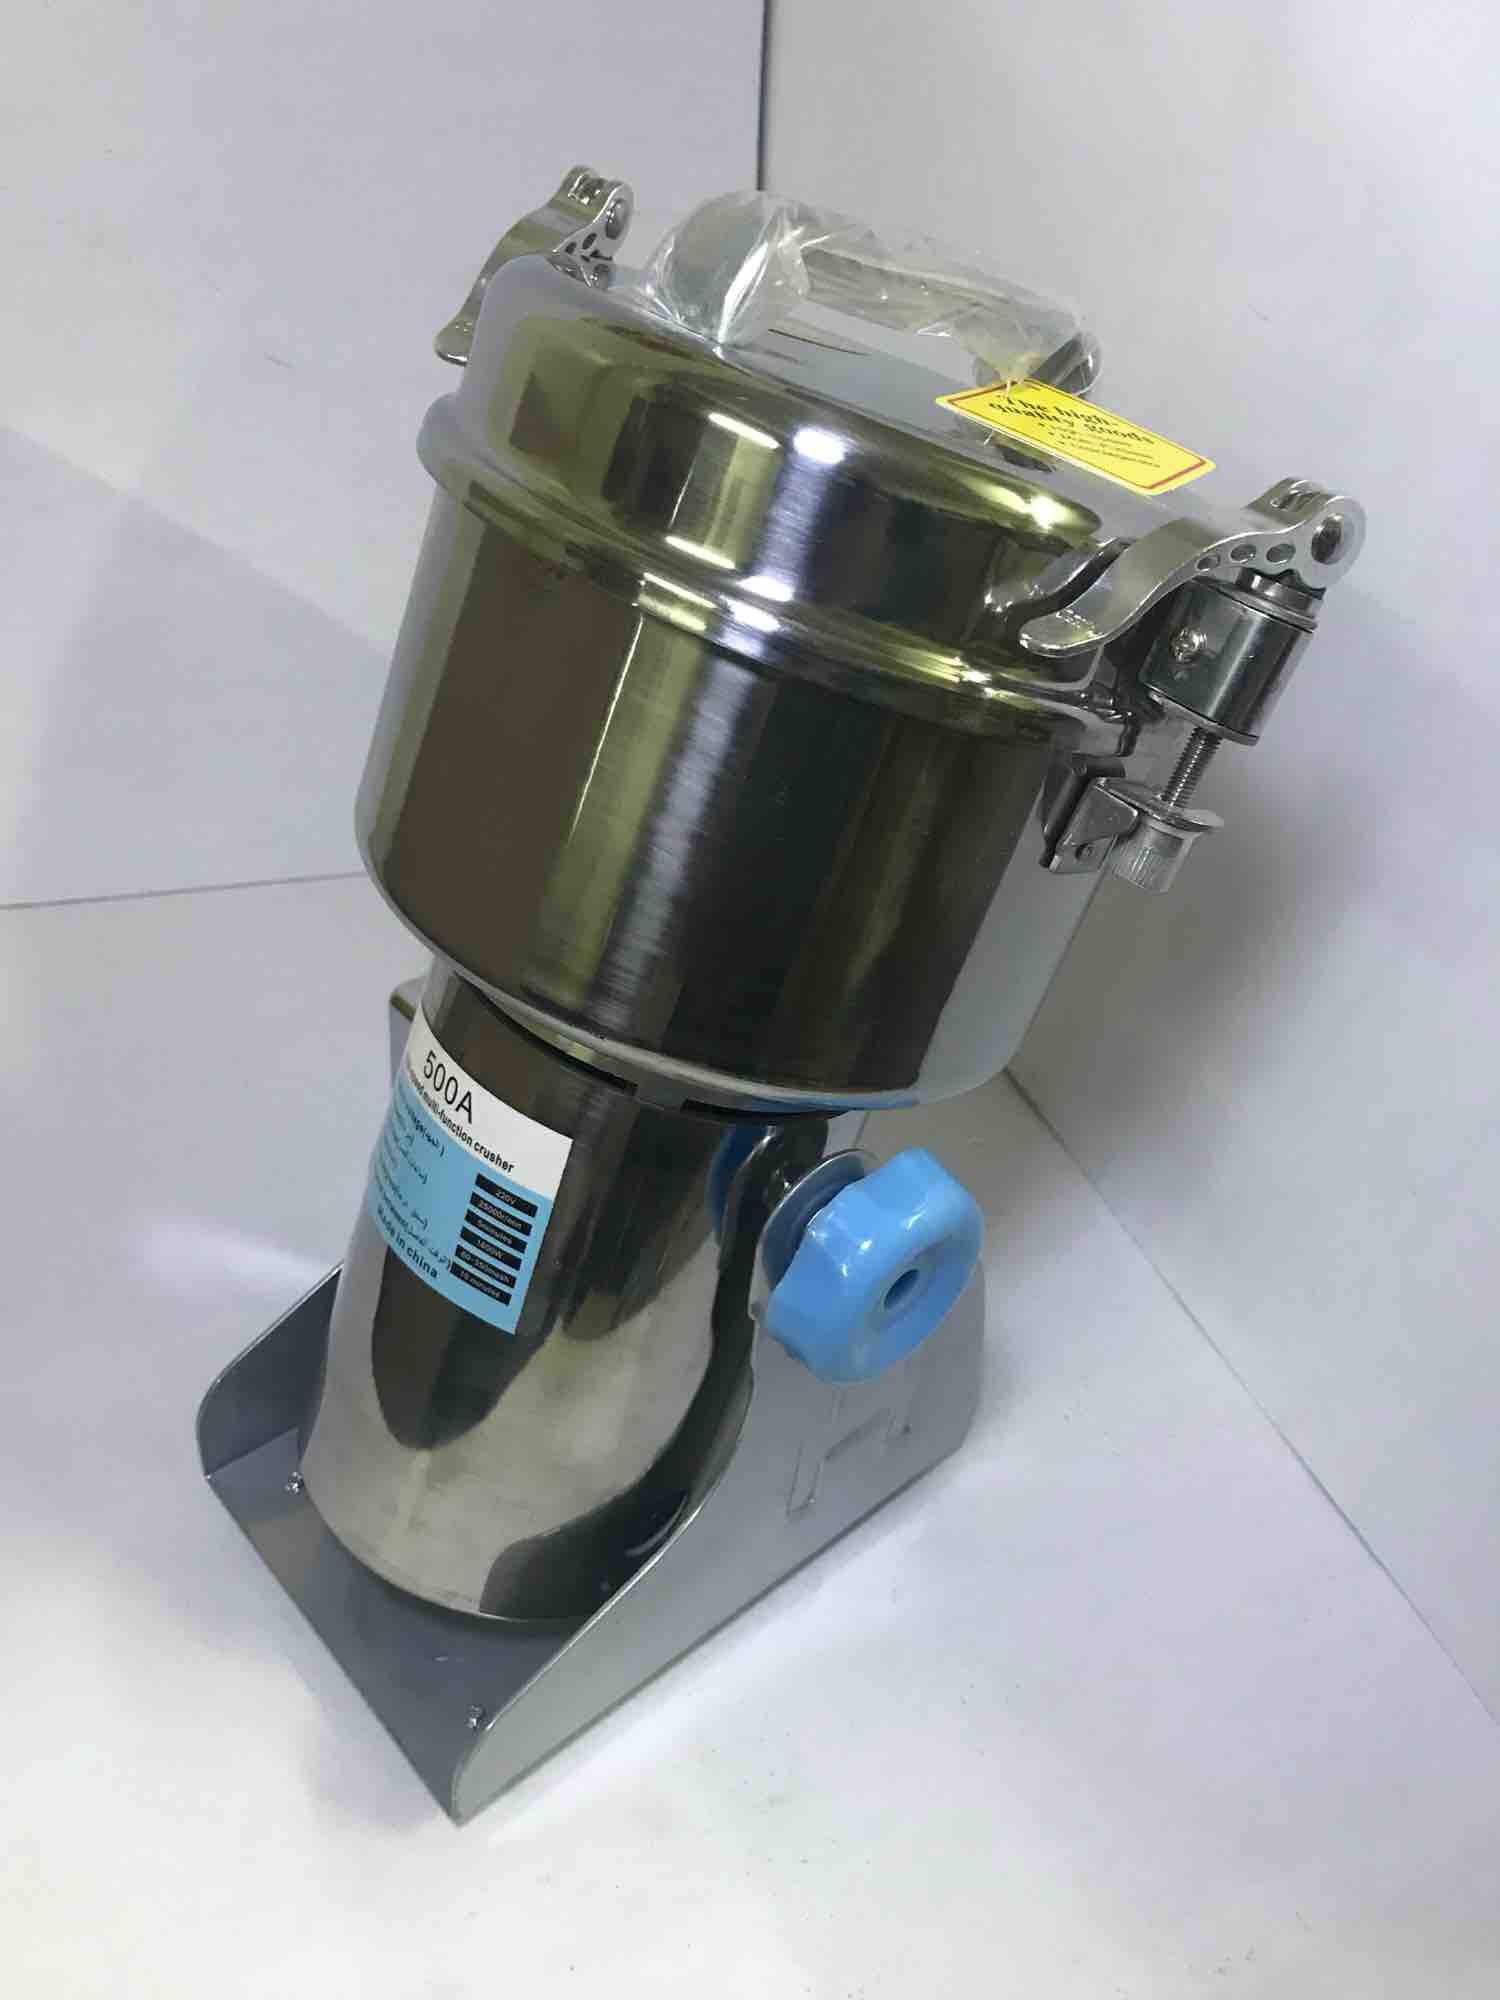 Grinder For Sale Meat Prices Brands Review In Prestige Car Alarm Wiring Diagram Pulverizer Heavy Duty 500grams Capacity